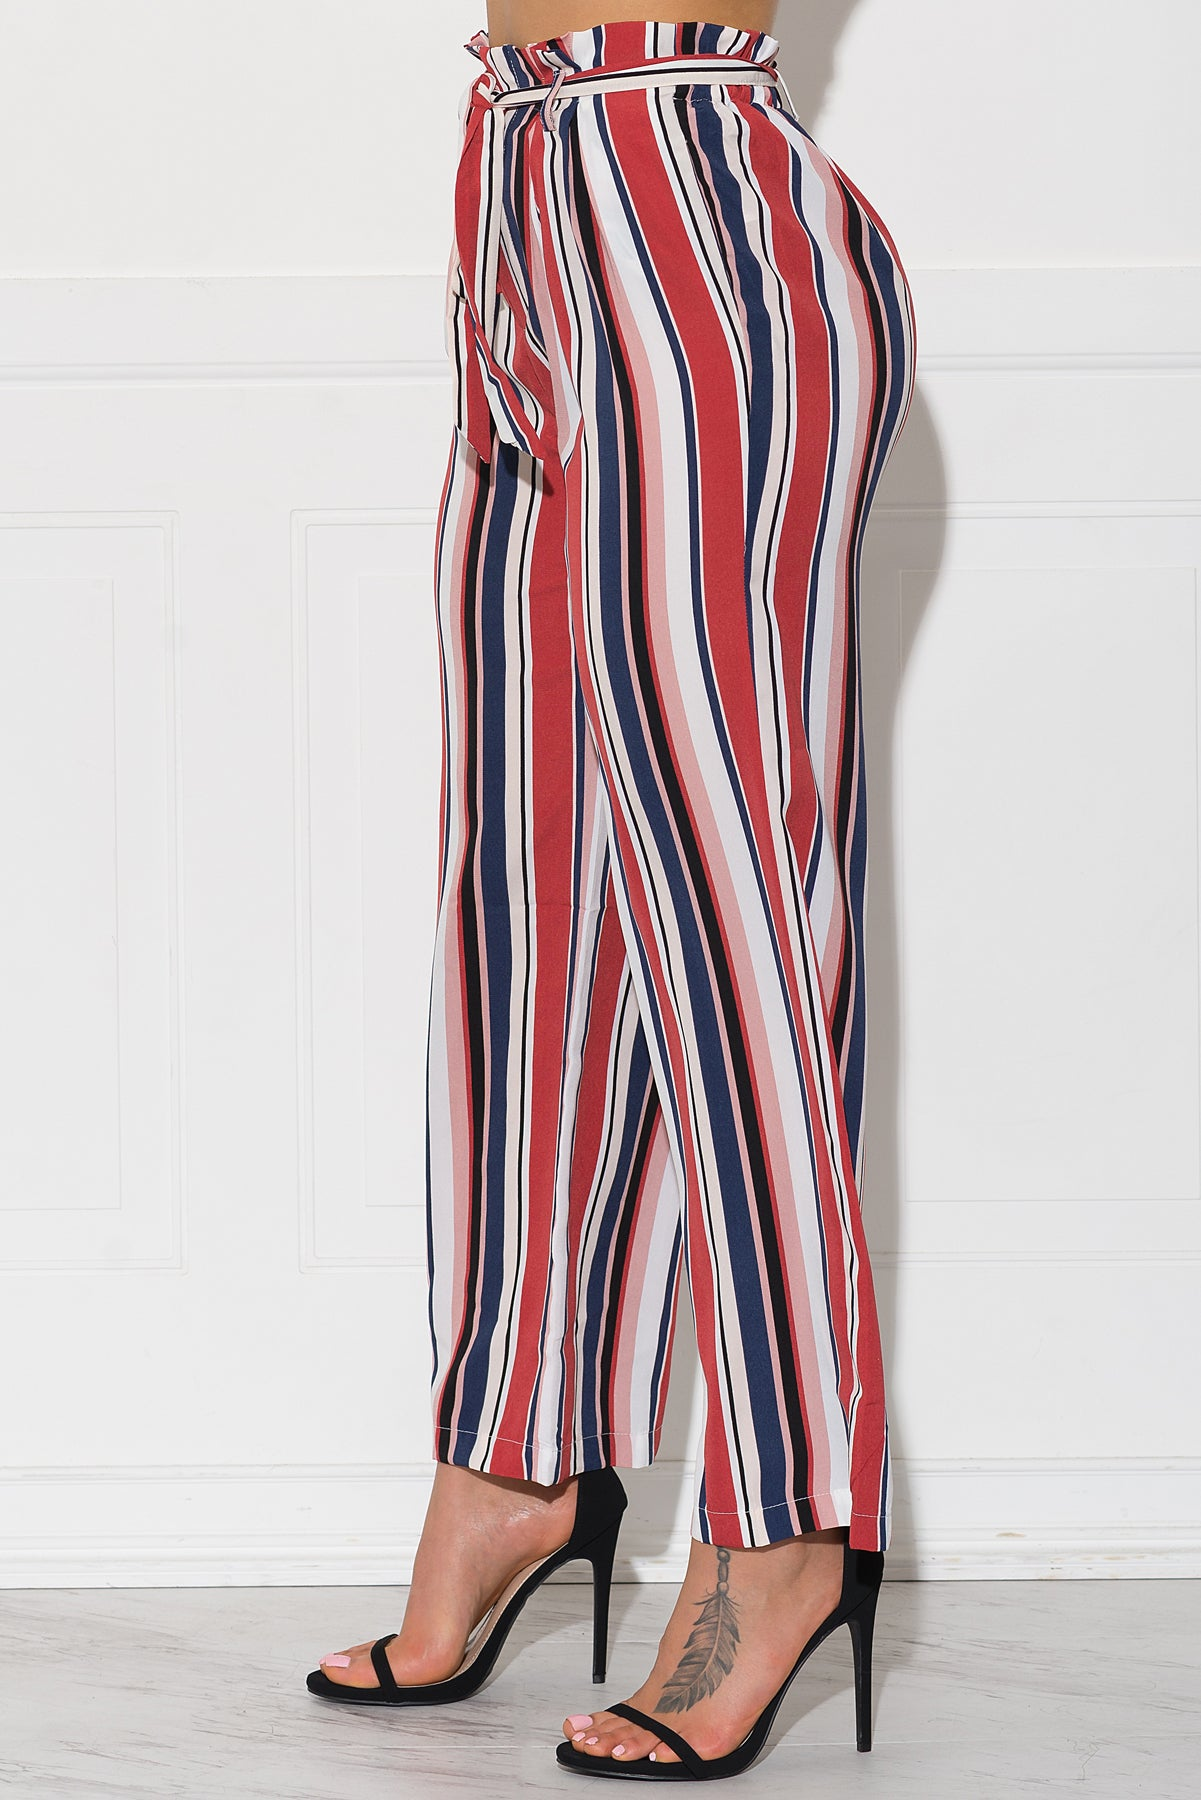 Linette Striped Pants - Navy/Red